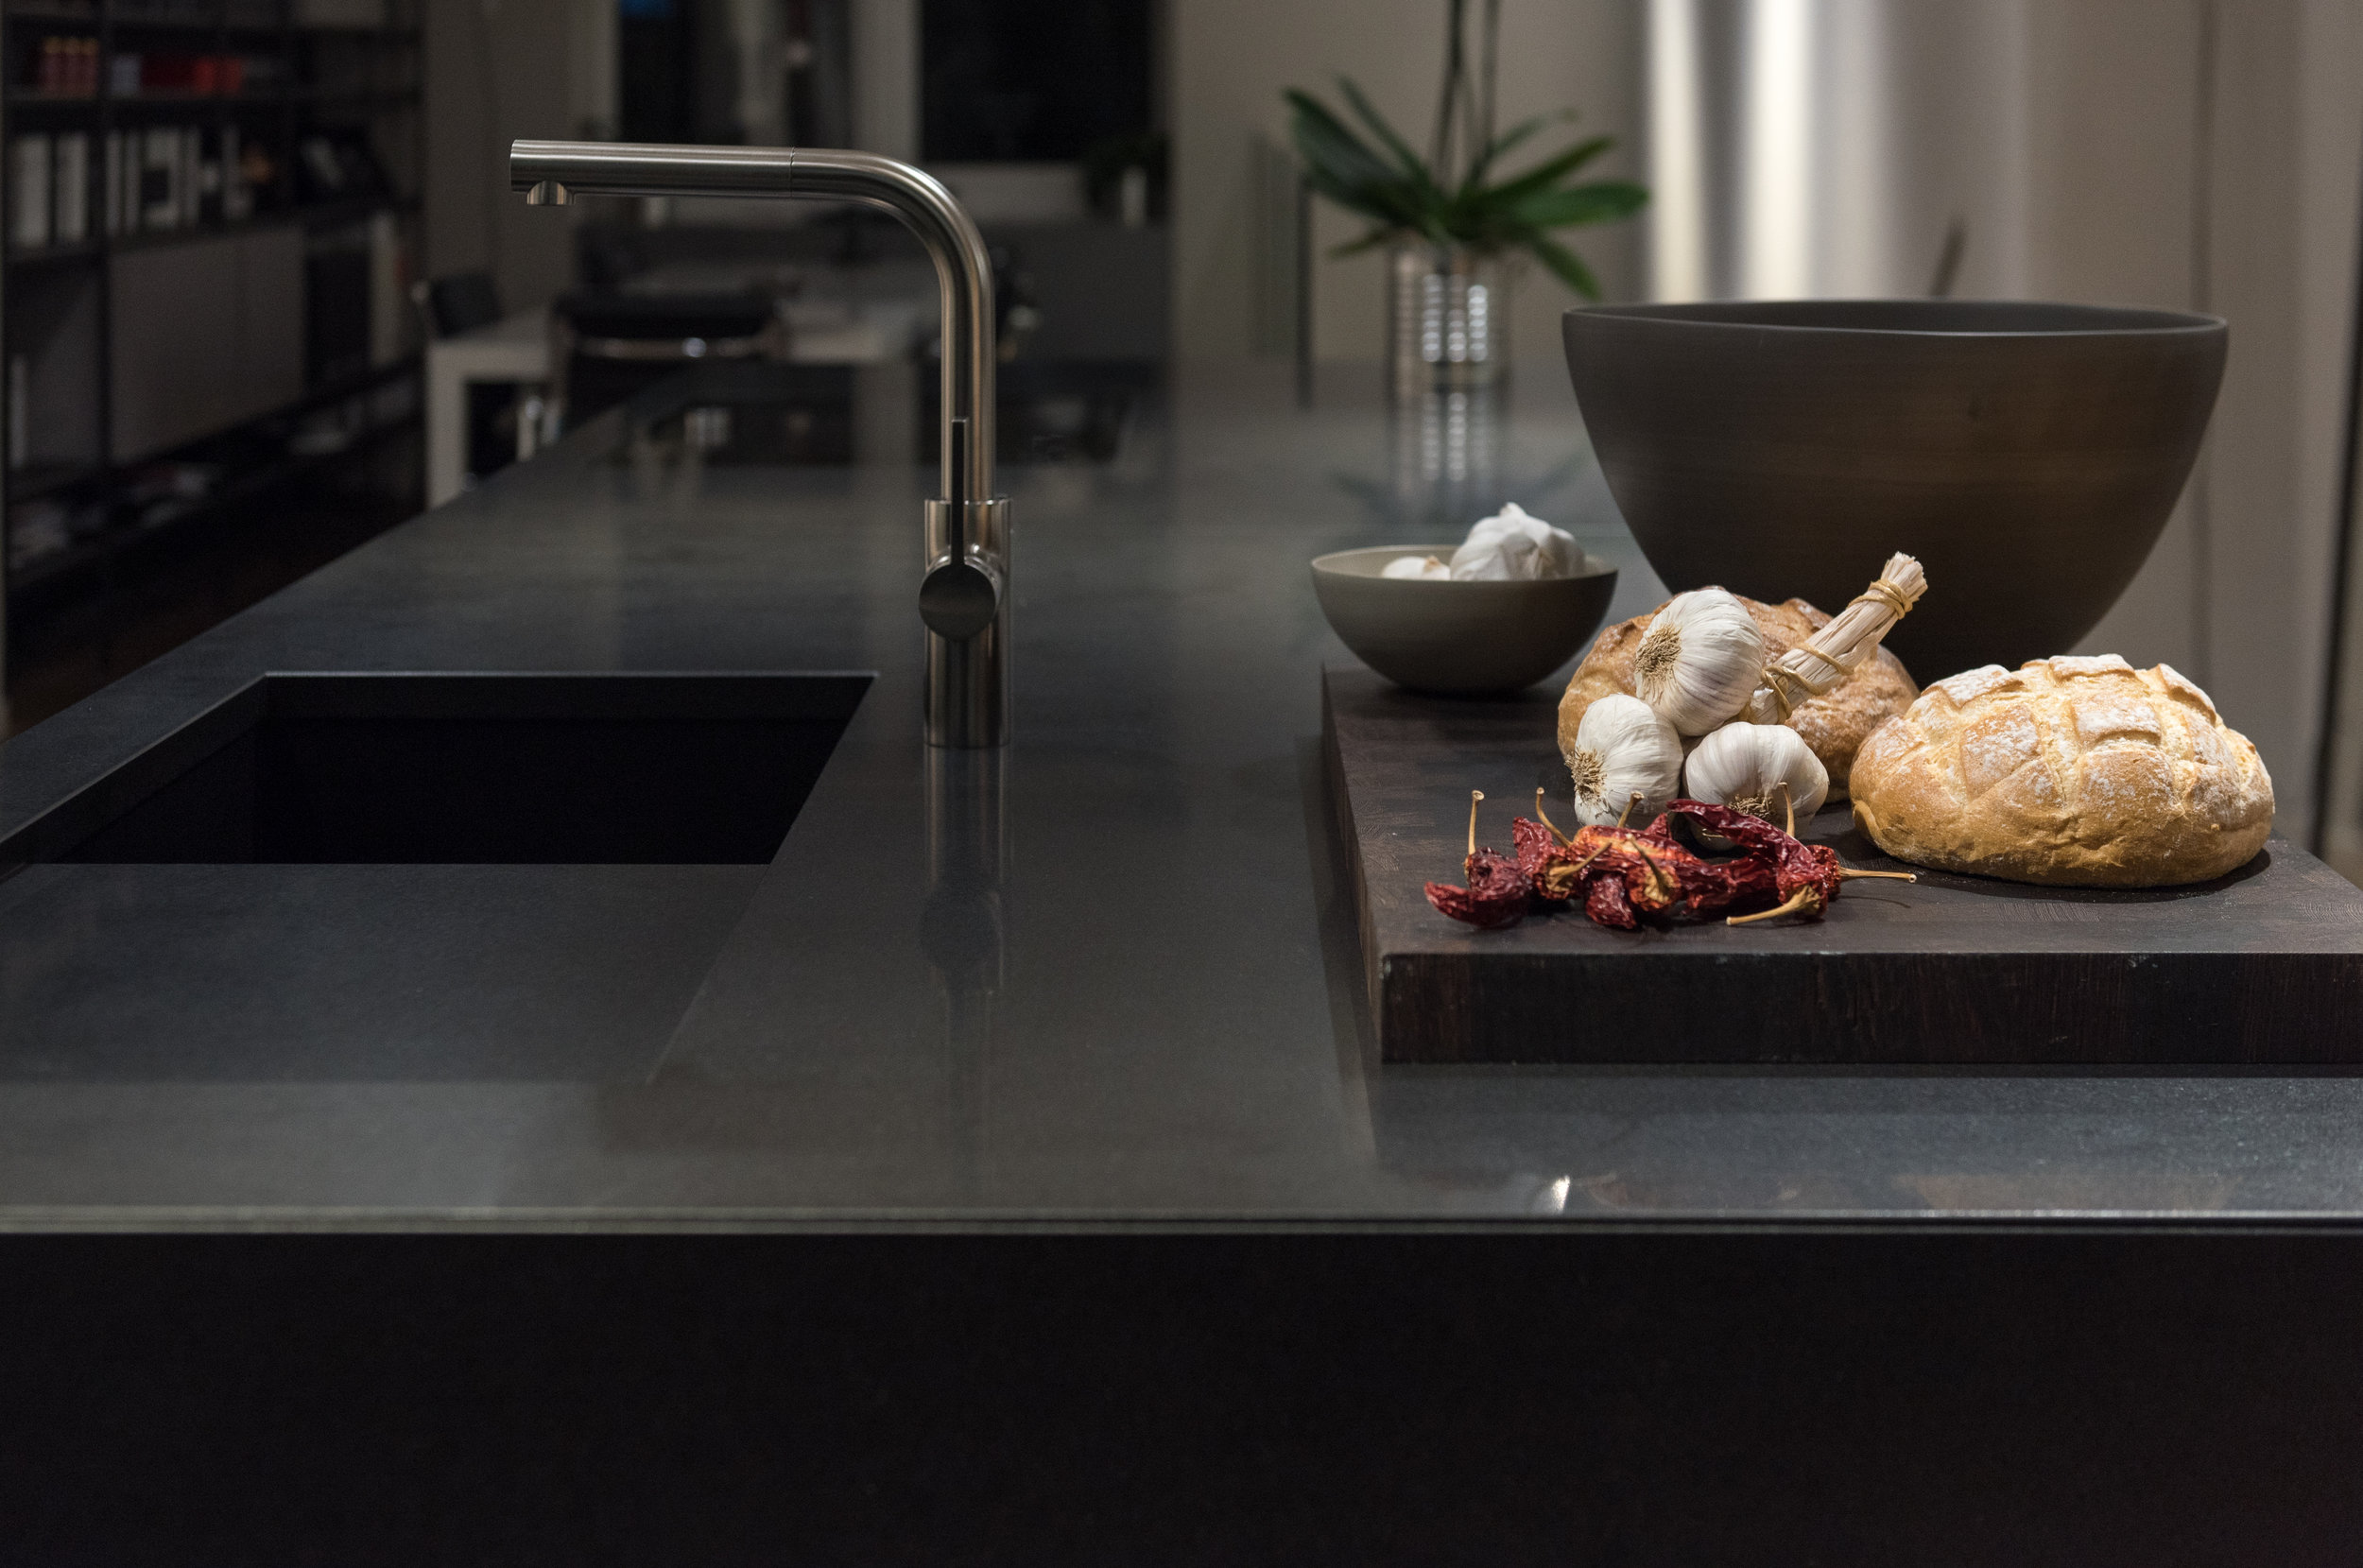 Quartz Surfaces - Until recently quartz was seen as a luxury kitchen surface, but the development of composite surfaces is opening the possibility of natural stone as an option for both kitchen and bathroom surfaces.